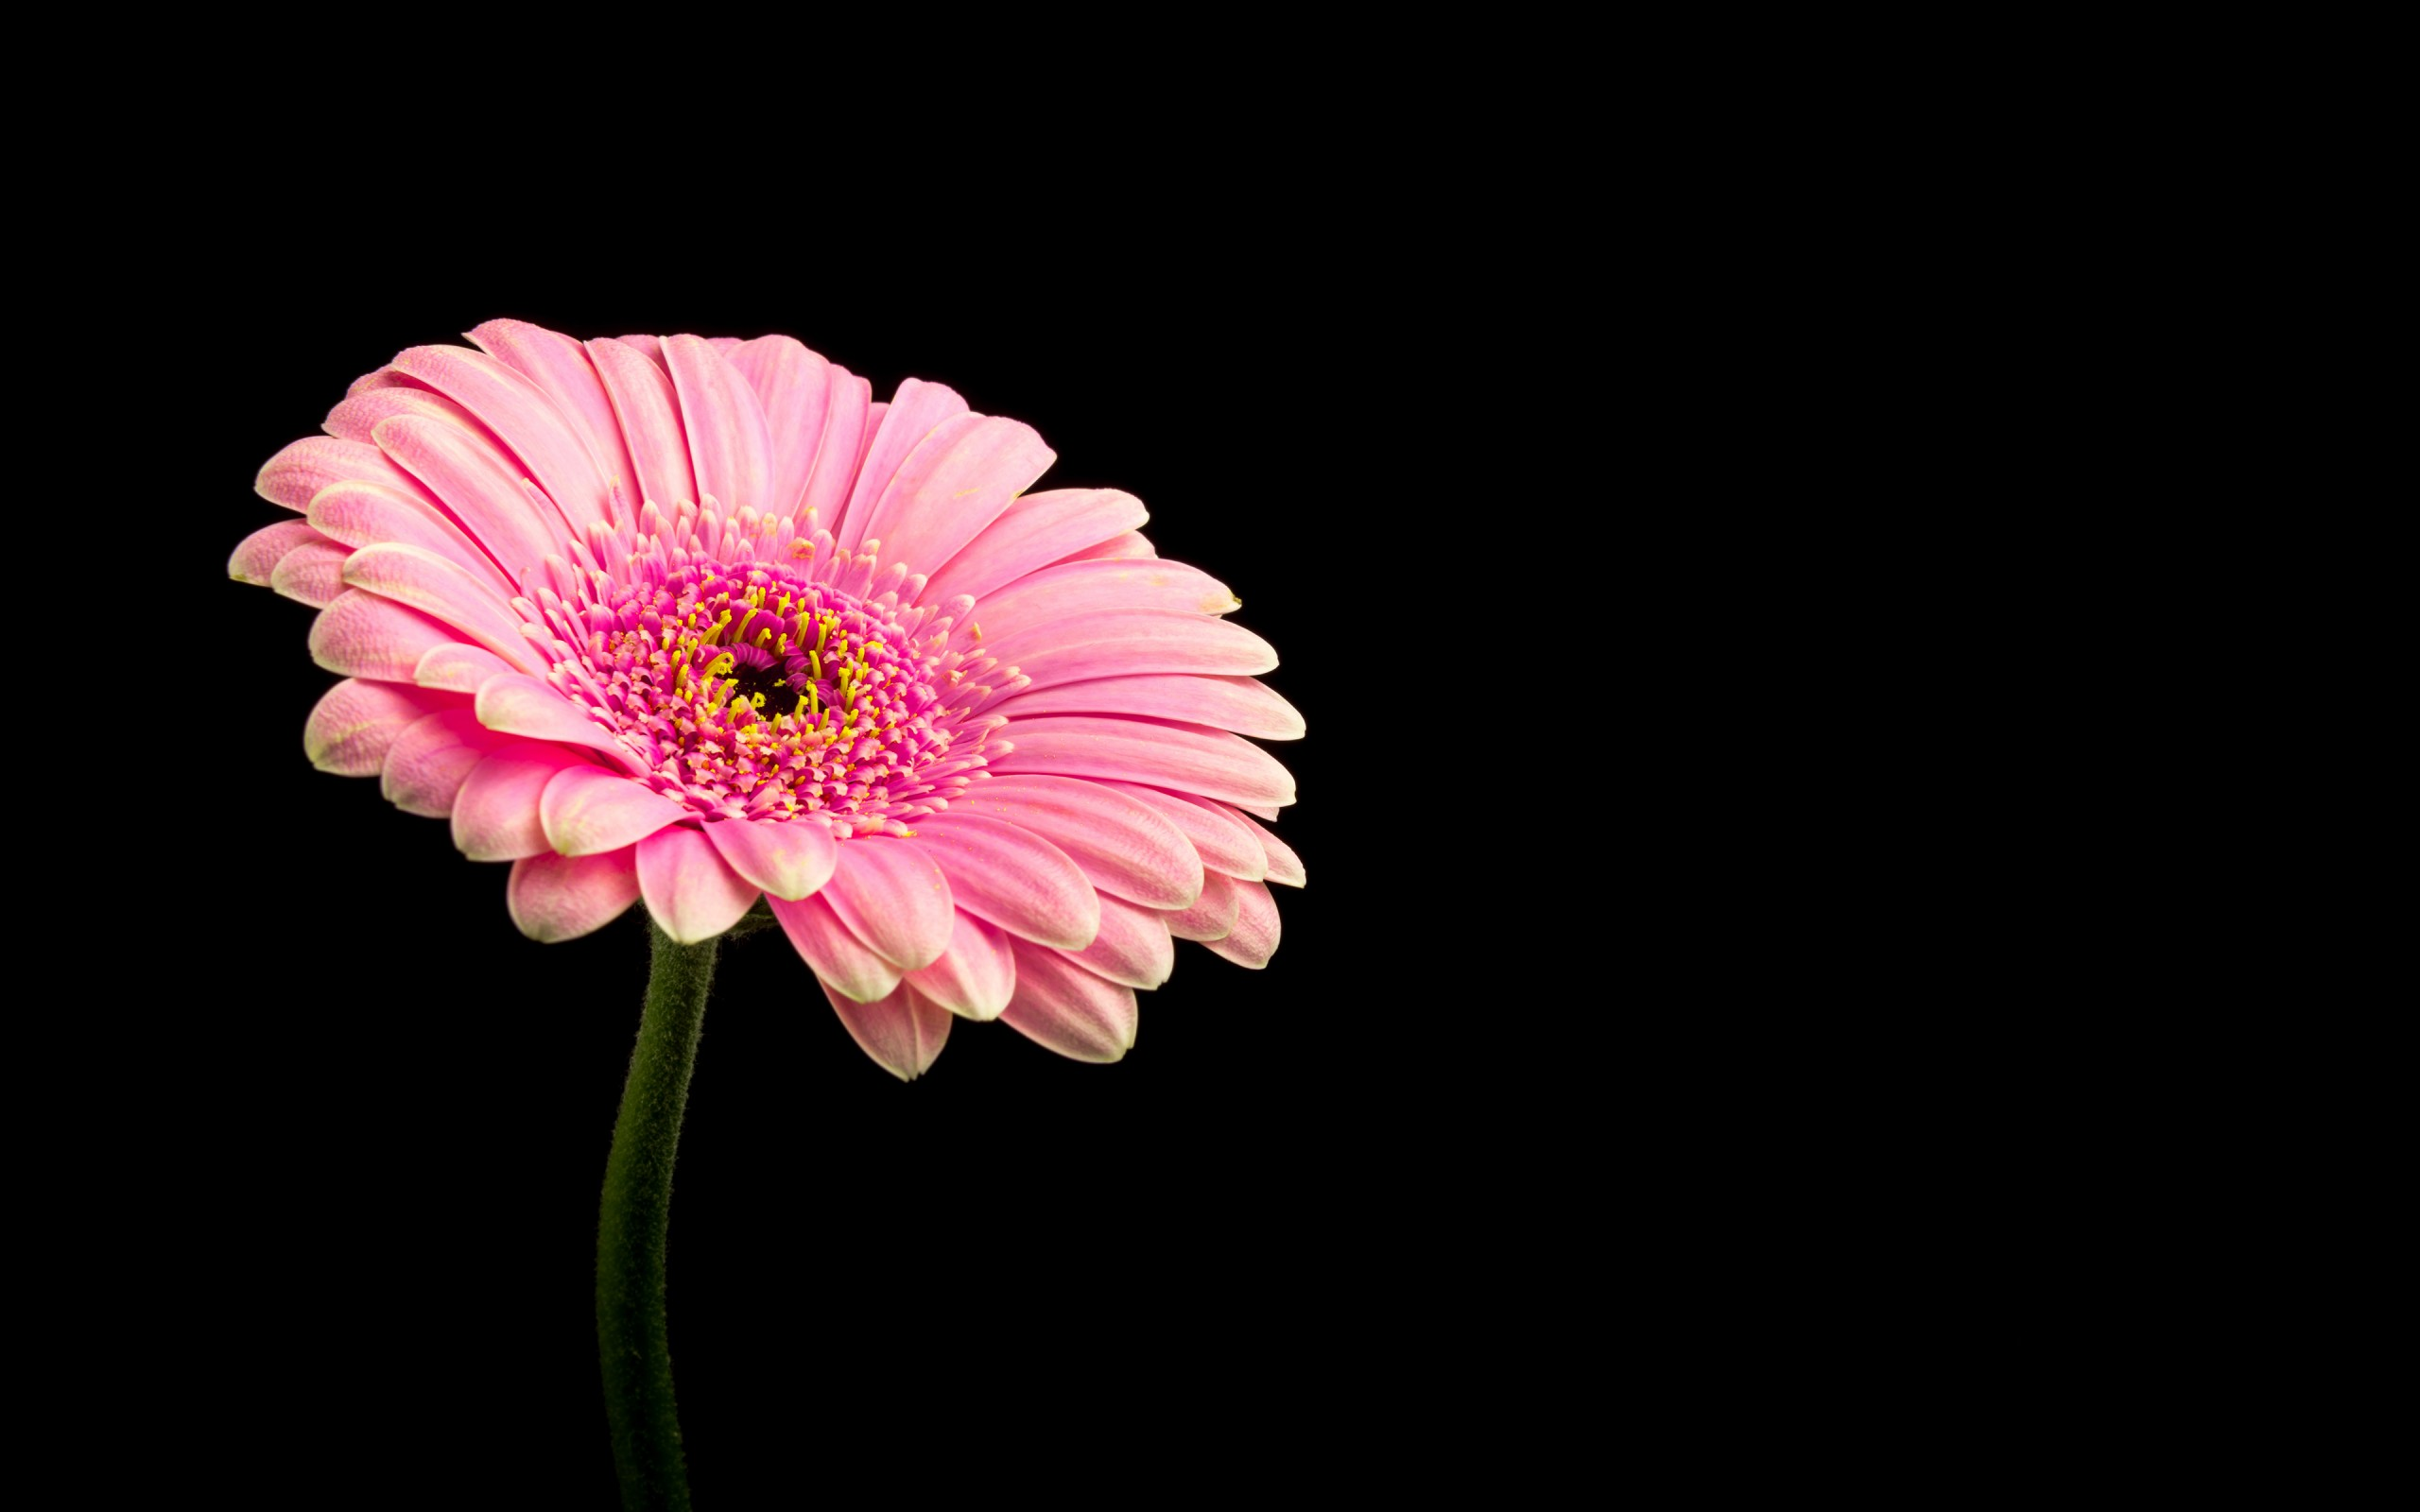 Pink Daisy Flower 4K Wallpapers  HD Wallpapers  ID 21246